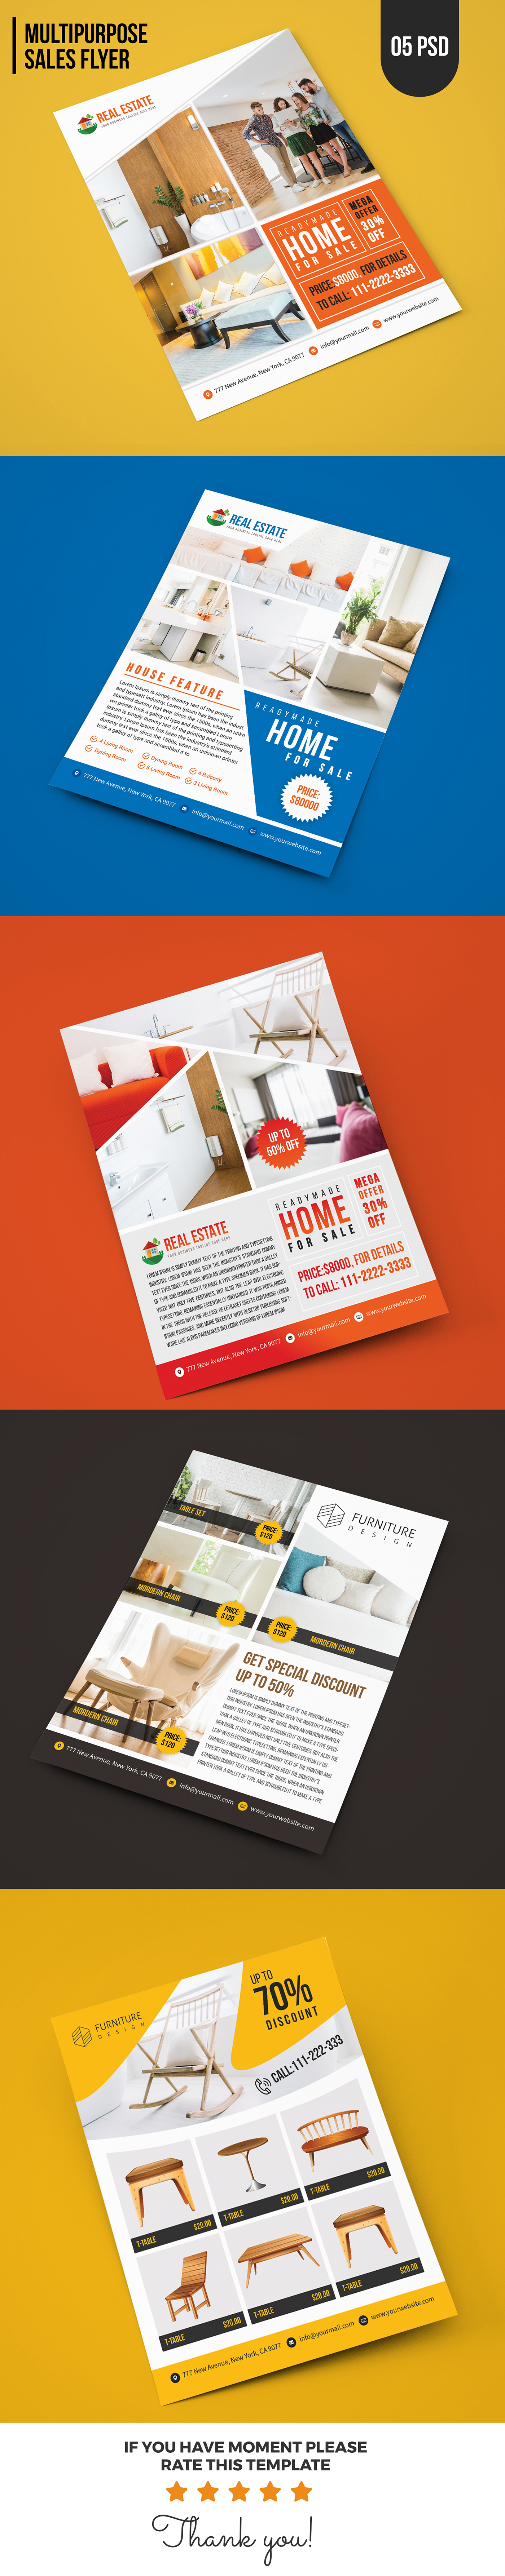 Real Estate / Furniture Sales Flyer Template by createuiux ...